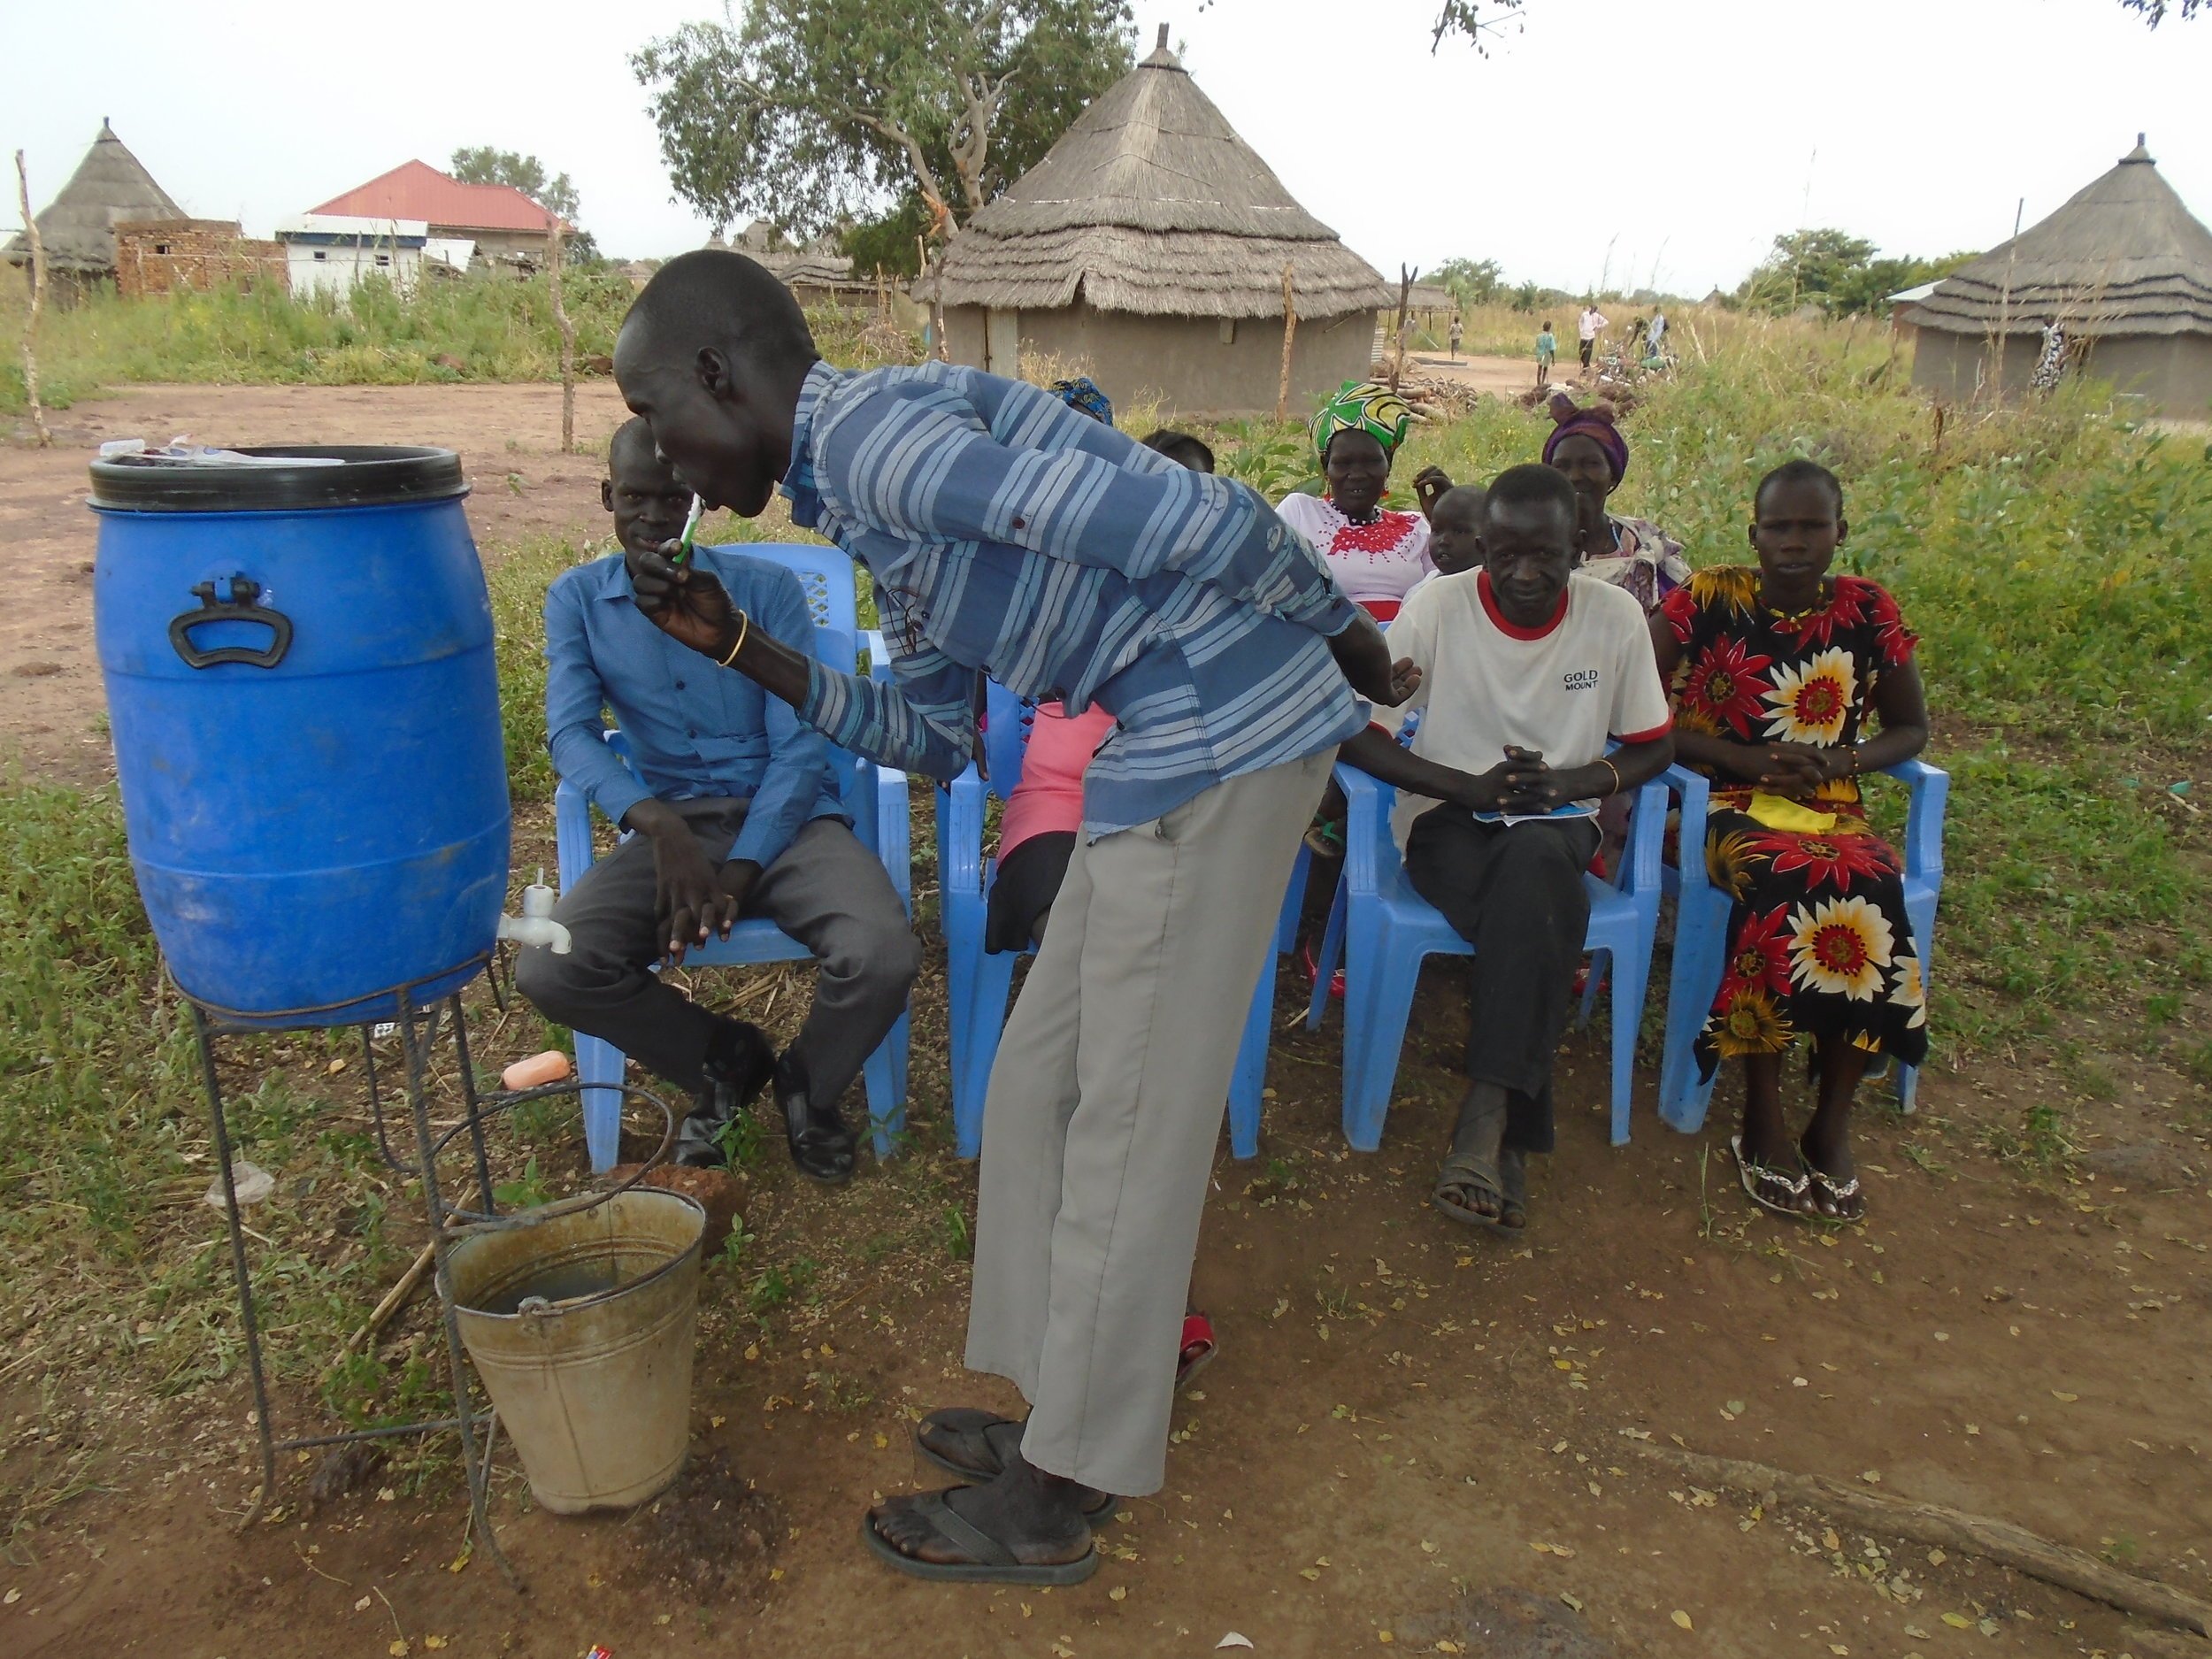 The WFSS Hygiene Teams travel to all villages with drilling and rehab teams to teach hygiene education, including personal hygiene.